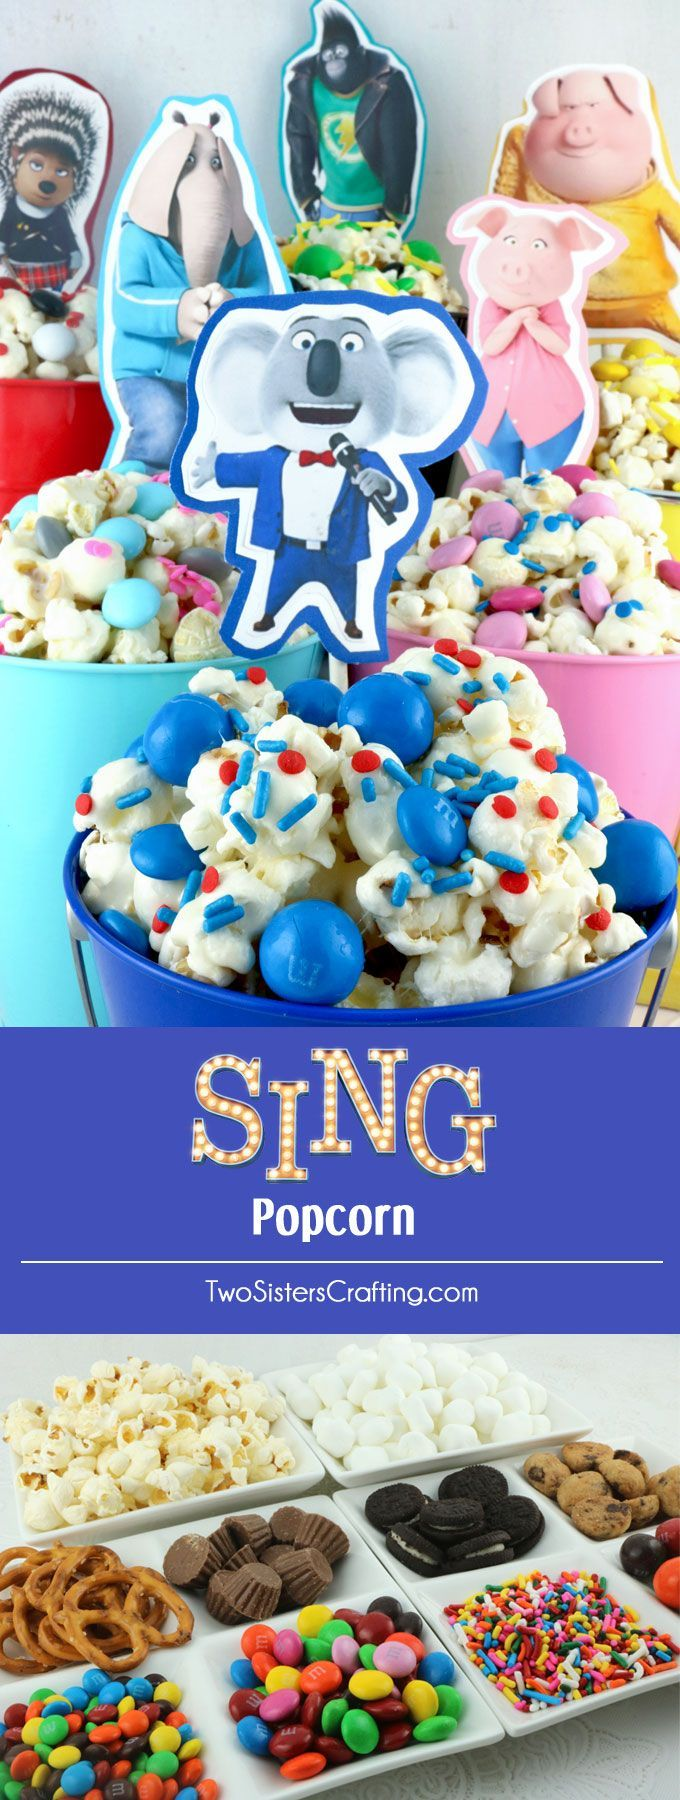 Sing Popcorn - fun and delicious.  This is a sweet and salty popcorn mixed with colorful candy mix-ins.  It is both yummy and adorable, a great combination!  A fun anytime snack that would also be a great Party food at a Sing Birthday Party or a special treat for a Sing Family Movie Night.  Pin this easy to make dessert for later and follow us for more great Popcorn Recipe Ideas.